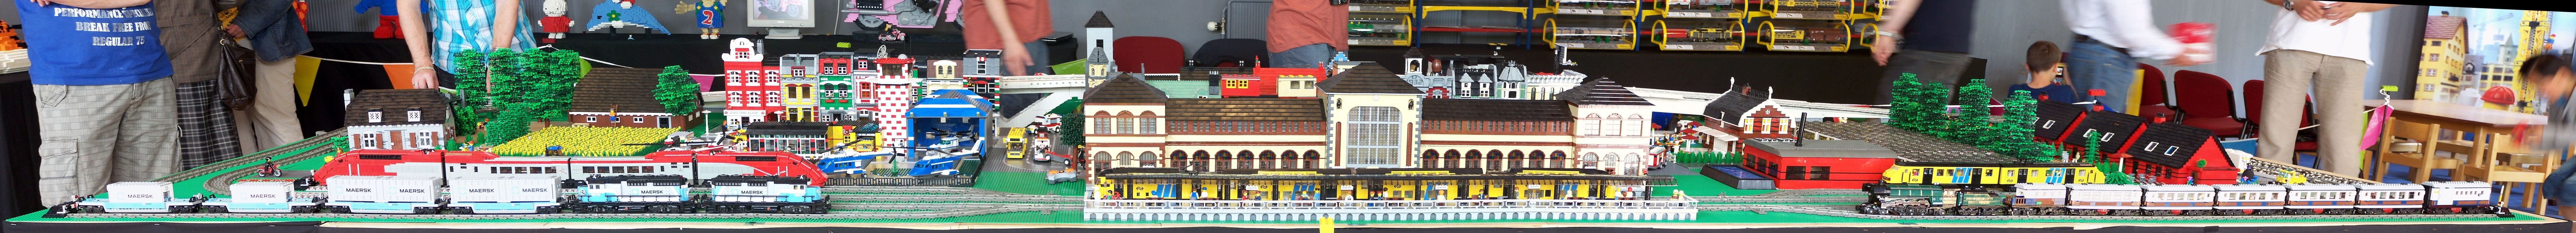 2011-05-07_brick_fair_flakkee_037.jpg